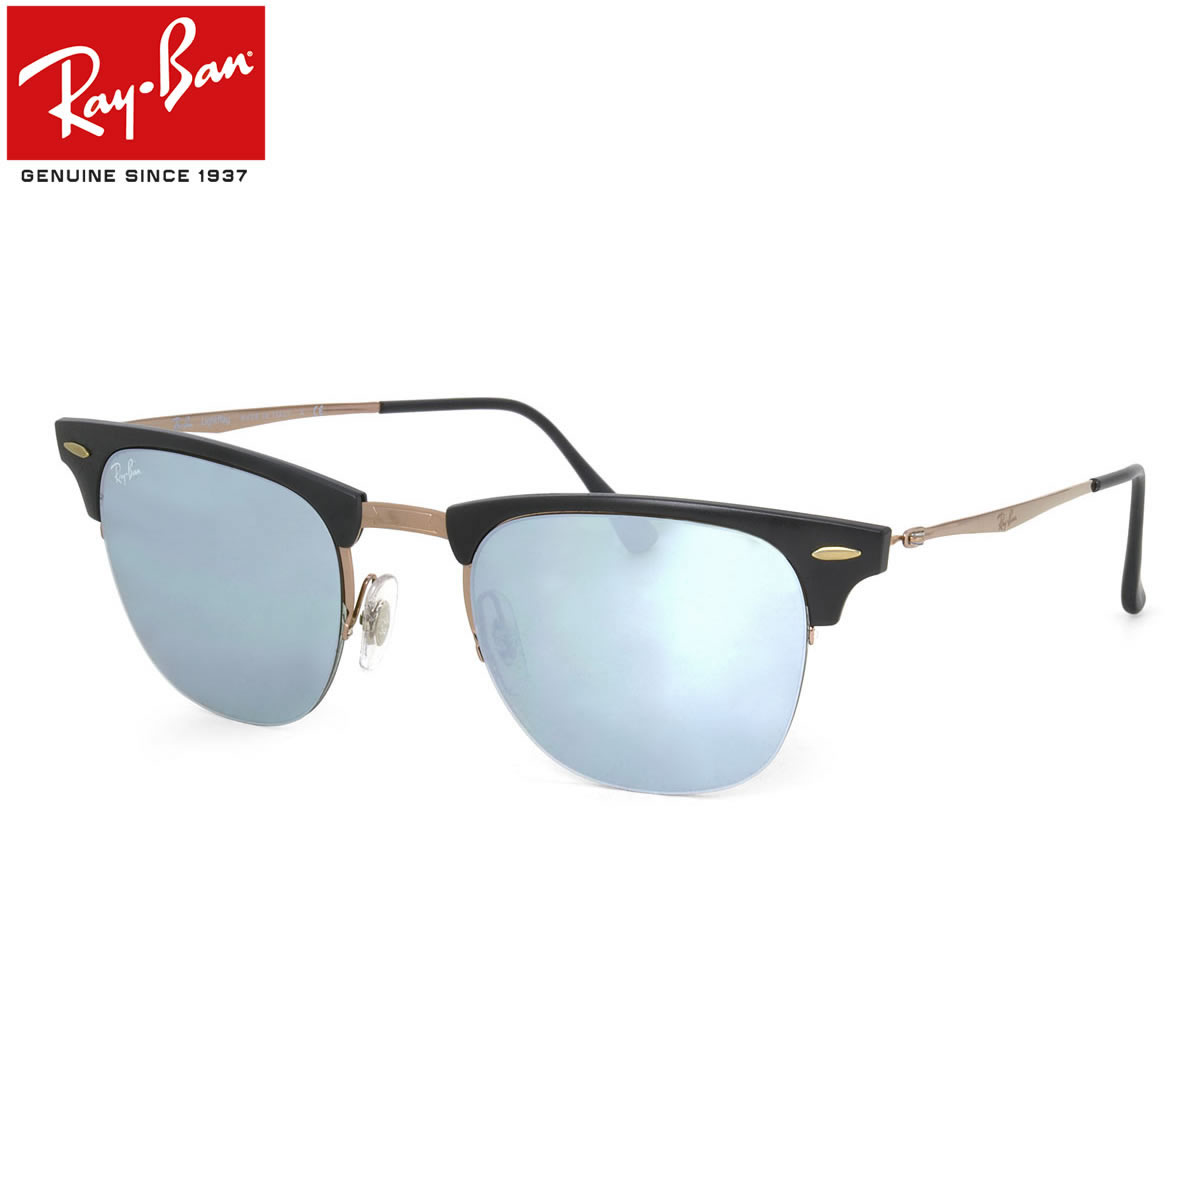 ecbbc7bed52 Optical Shop Thats  Ray-Ban Sunglasses RB8056 176 30 51size TECH ...